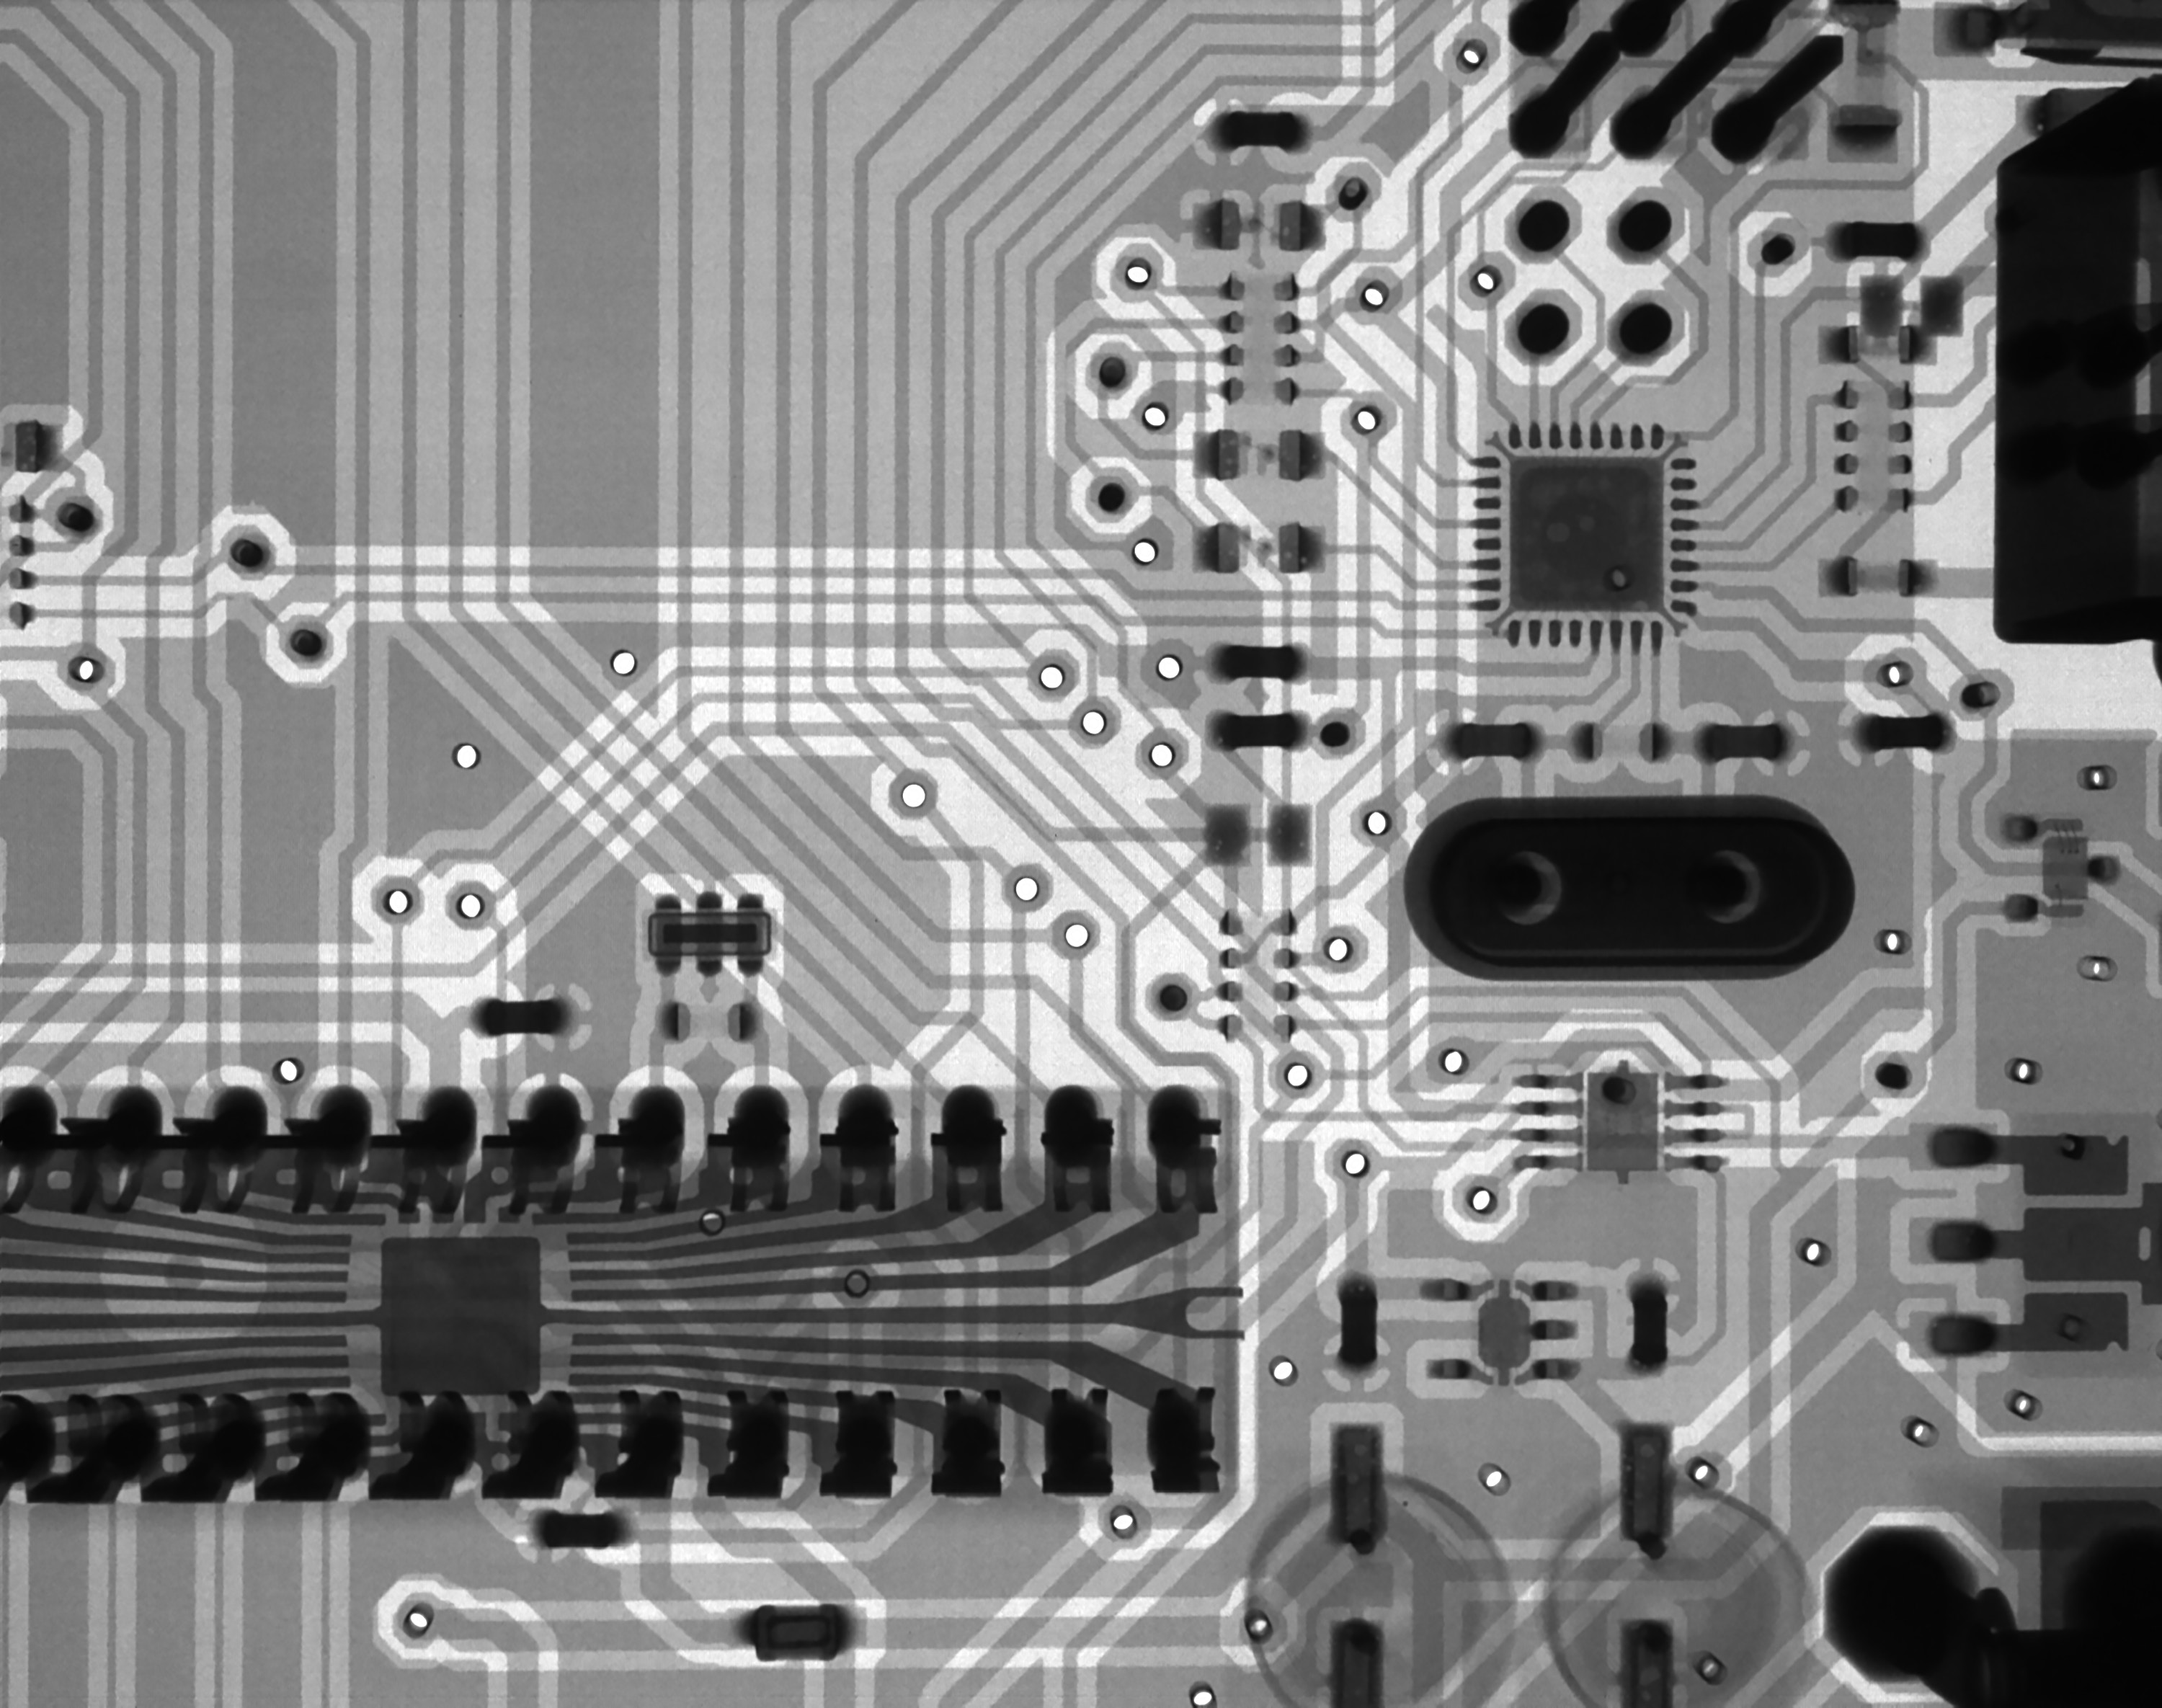 High speed design applications require careful printed circuit board planning